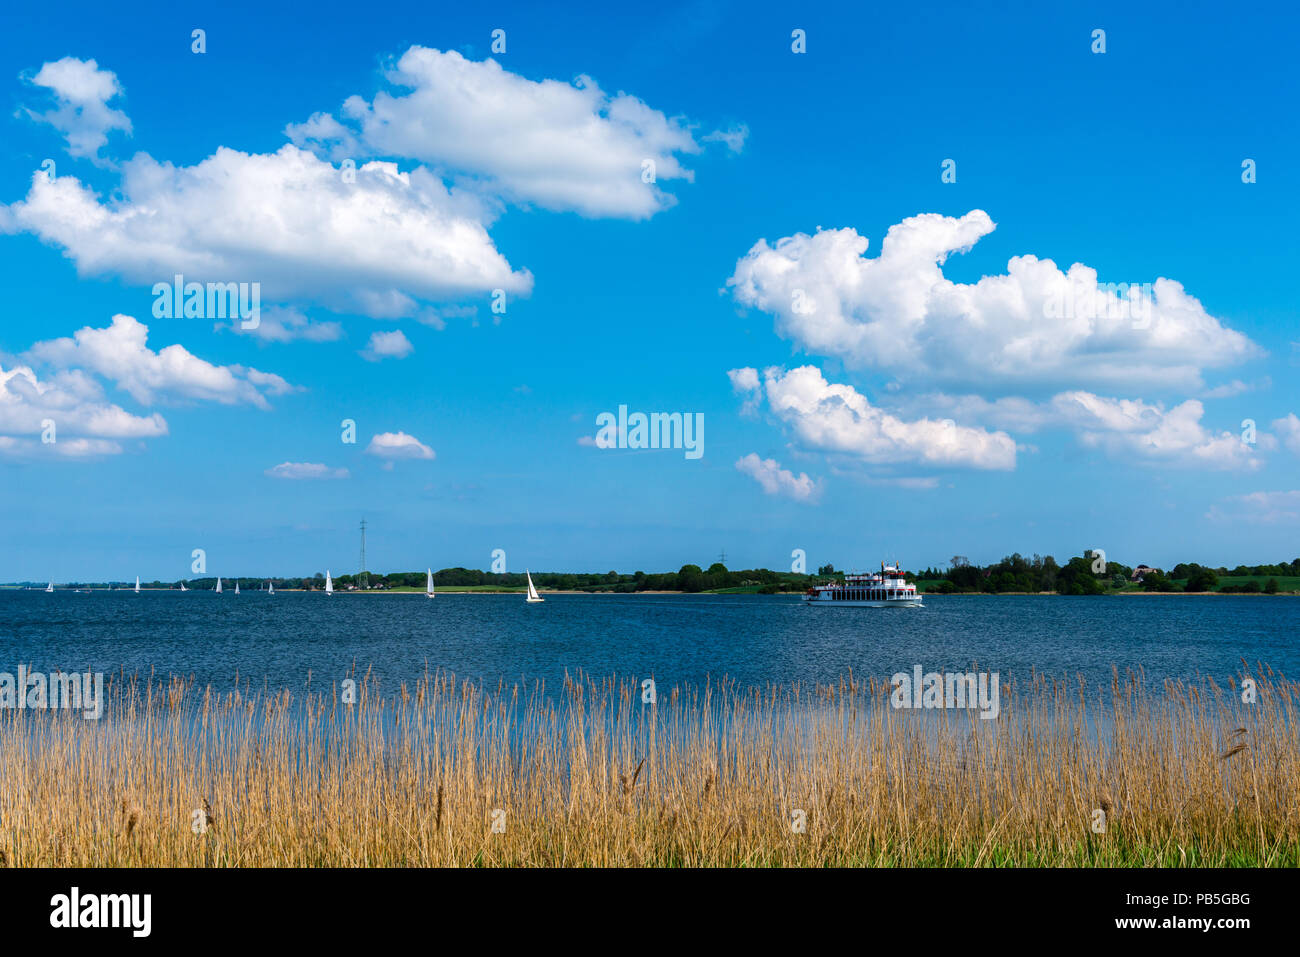 Sunny summer weather for sailing on the Schlei  Fjord, Lindaunis, landscape of Angeln, Schleswig-Holstein, Germany - Stock Image